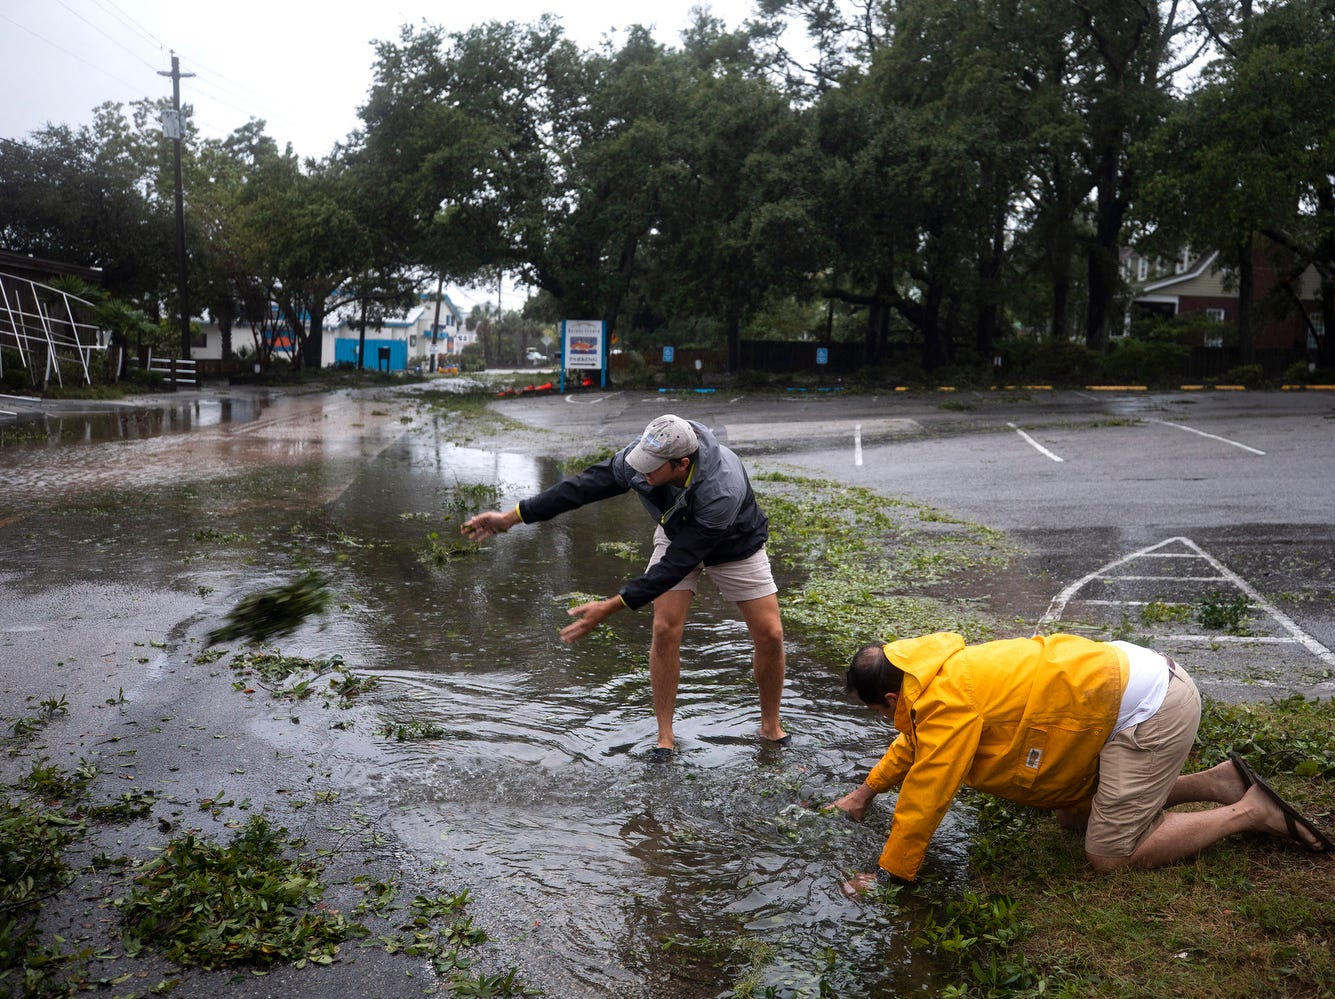 Jay Baker (R) and Chris Floyd (L) attempt to clear debris from a storm drain as Hurricane Florence comes ashore in Wilmington, N.C..